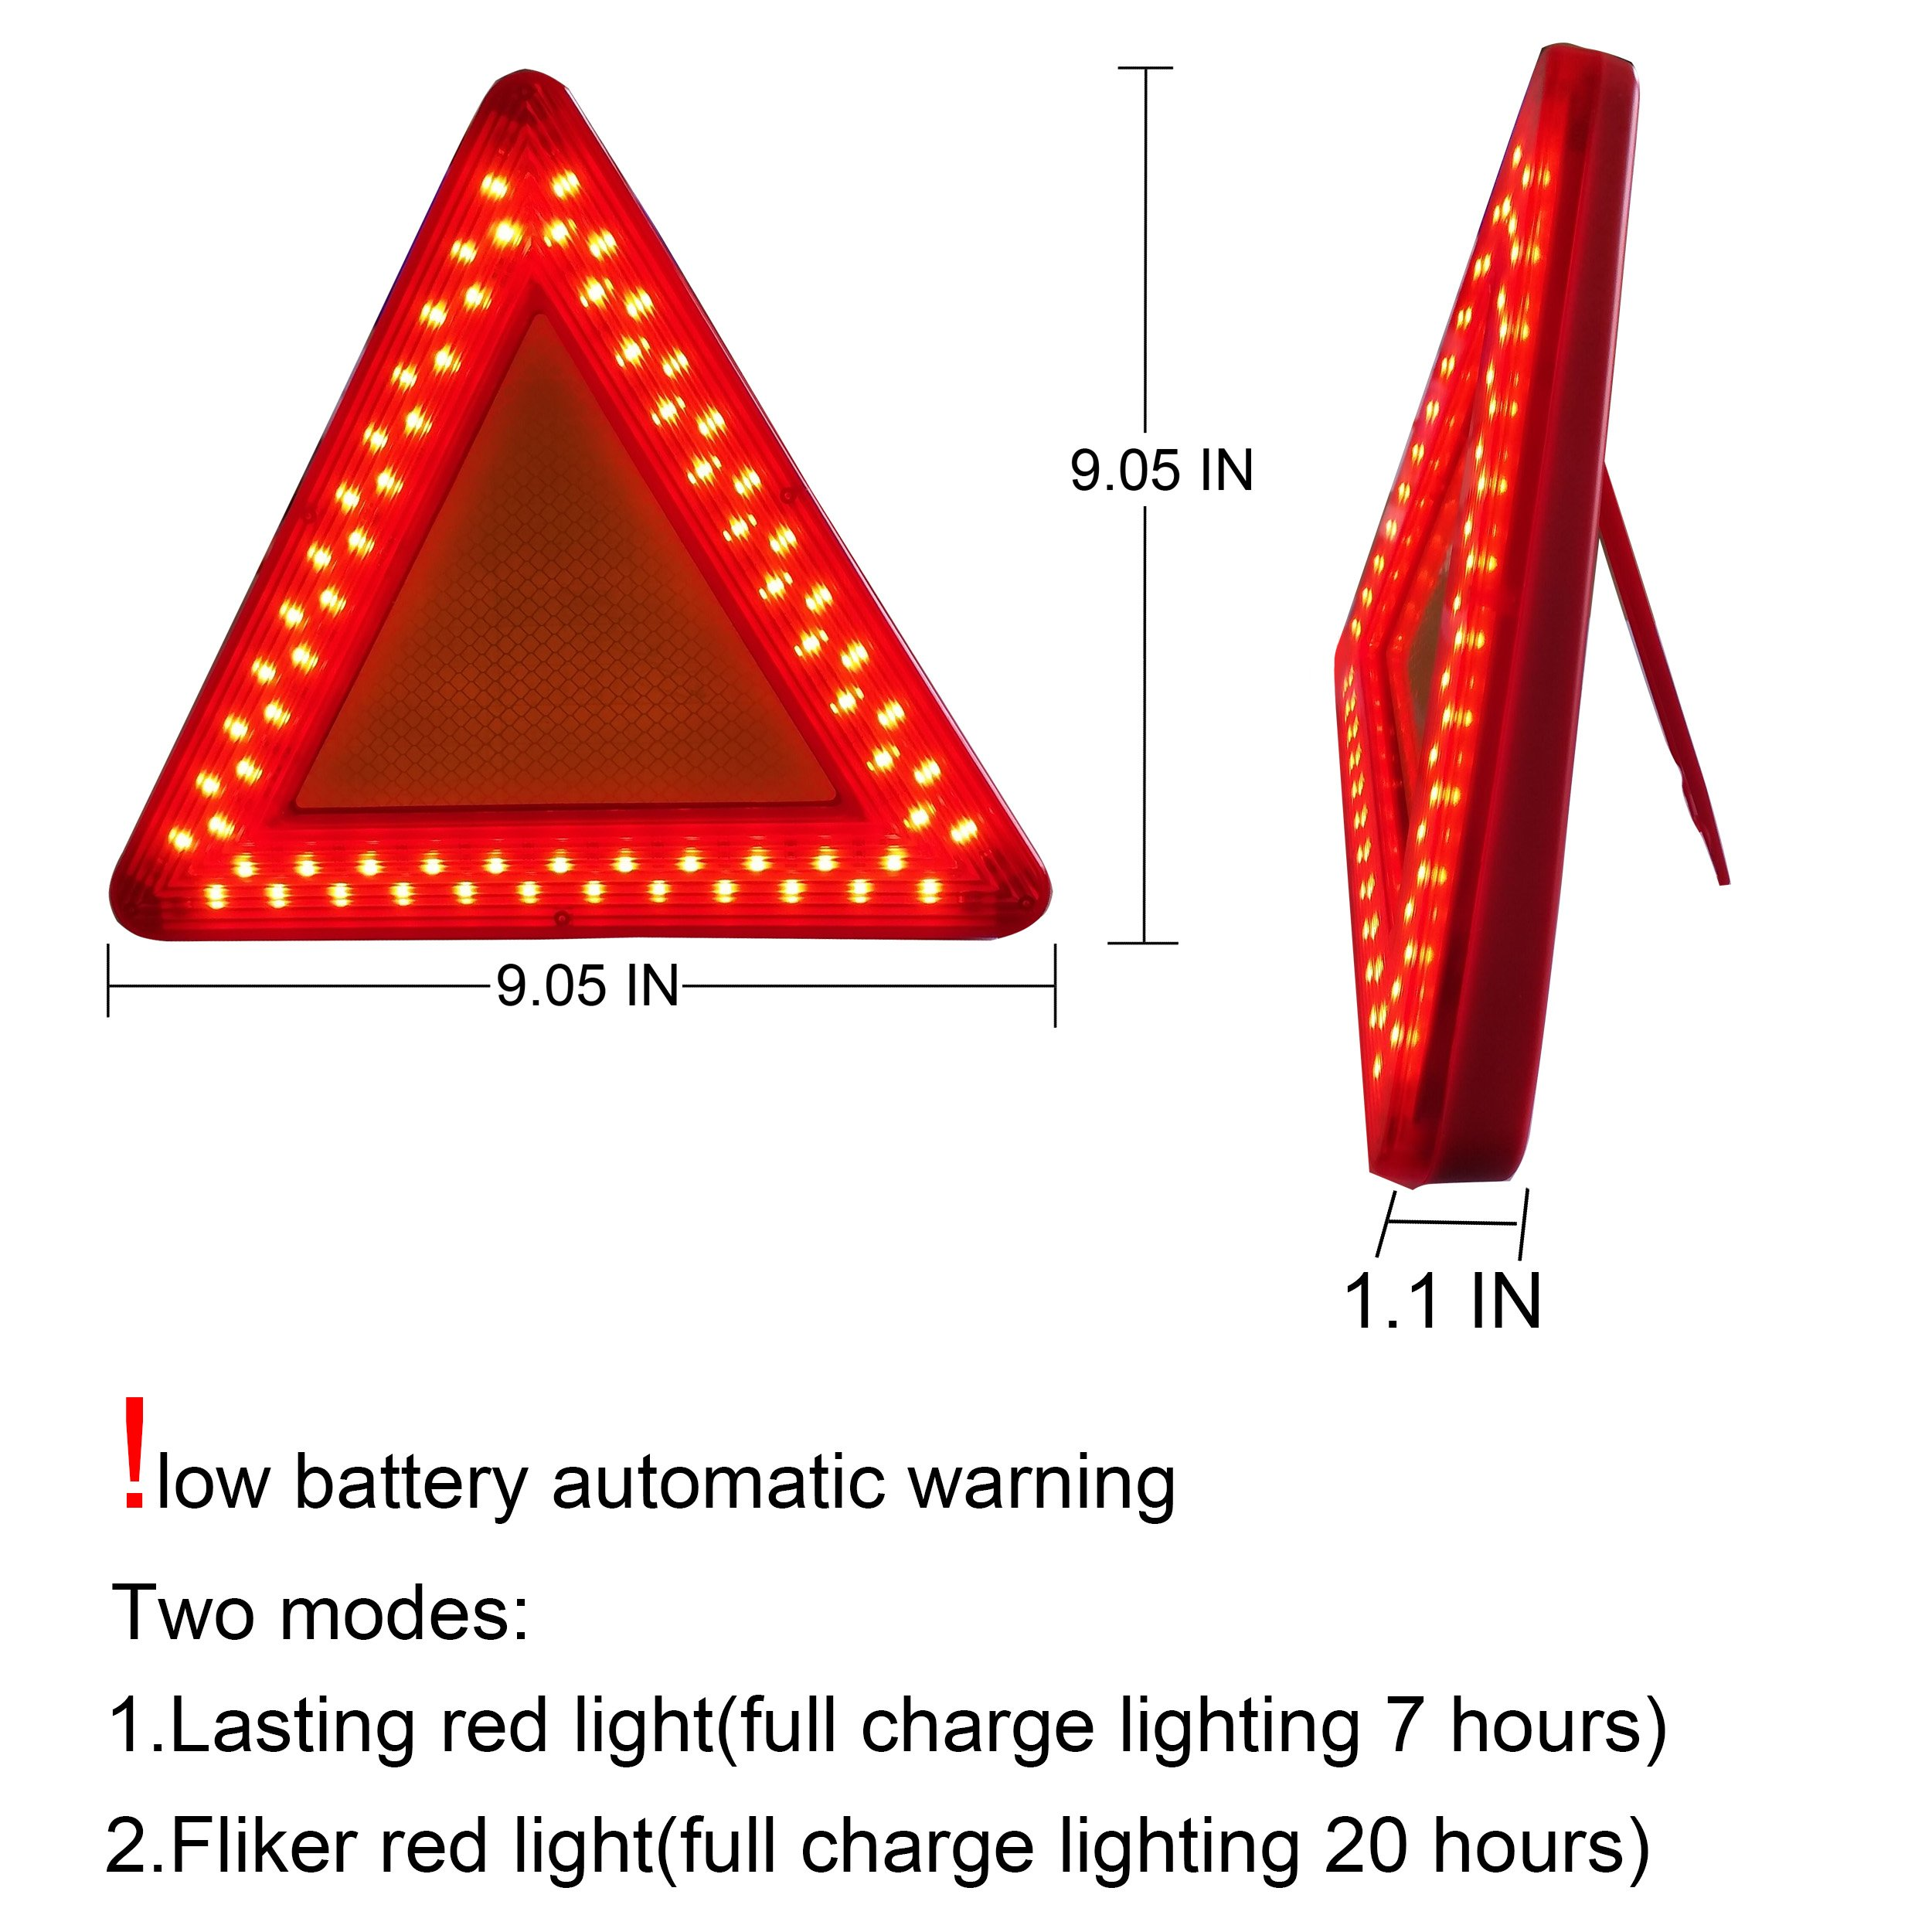 Red Triangle Warning Reflective Kit, 2 Modes Safety Emergency Warning Triangle Reflective for Highway Roadside etc, 9.05 Inch - 3 pack by WELLHOME (Image #1)